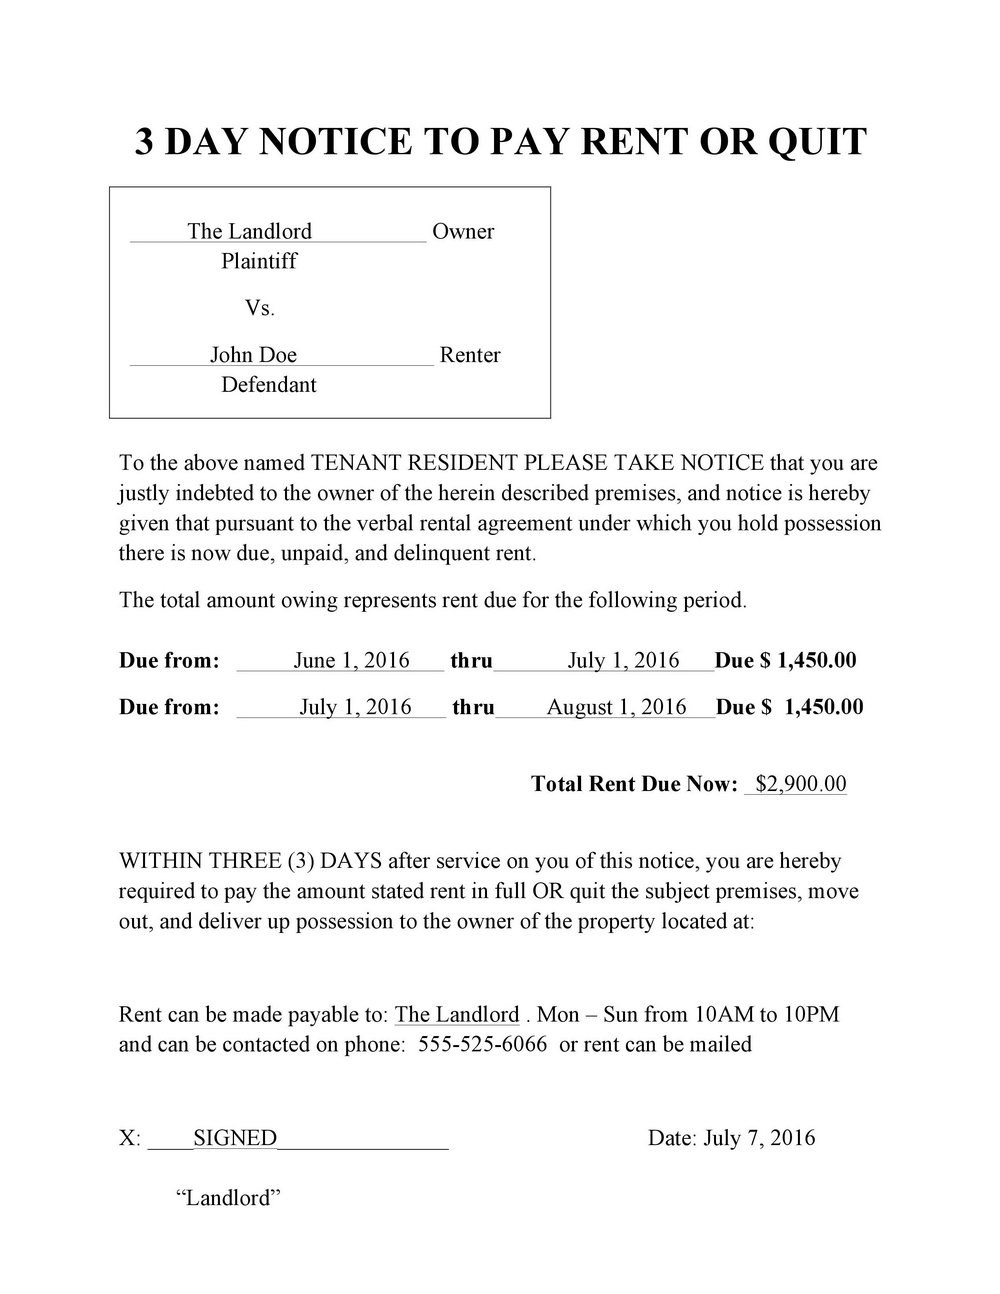 3 Day Notice To Pay Rent Or Quit Form